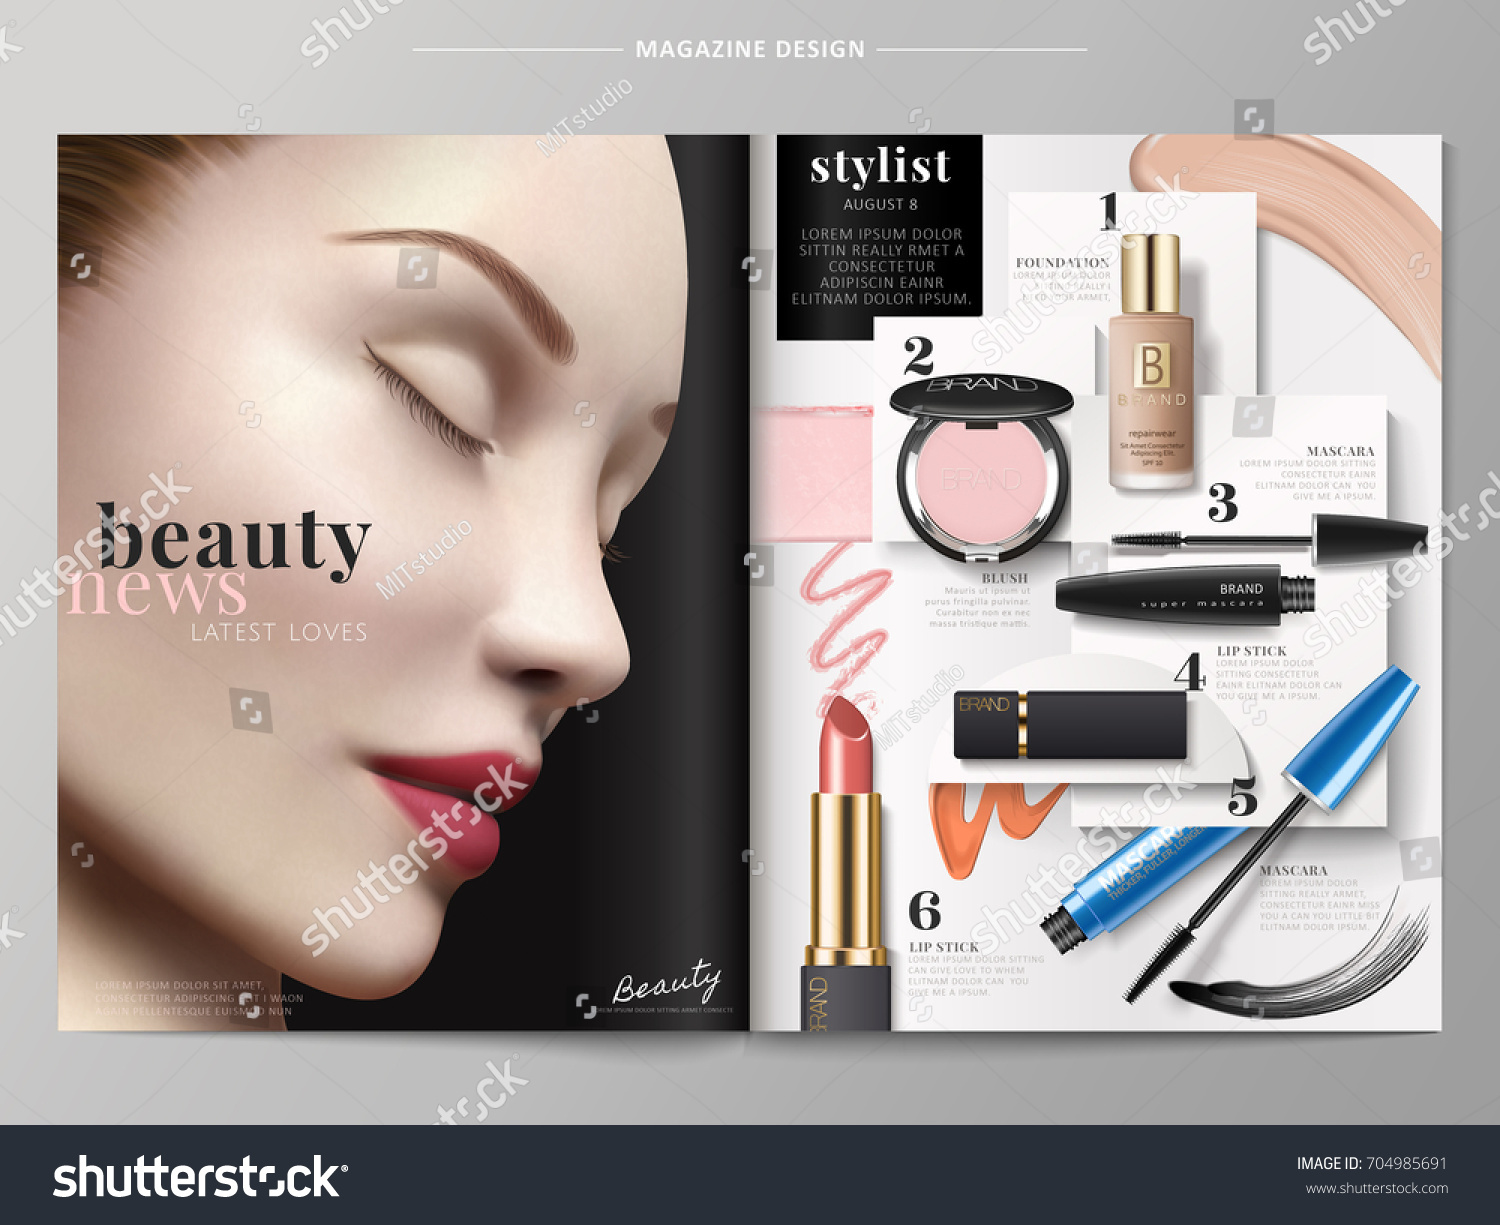 Makeup Articles Magazine